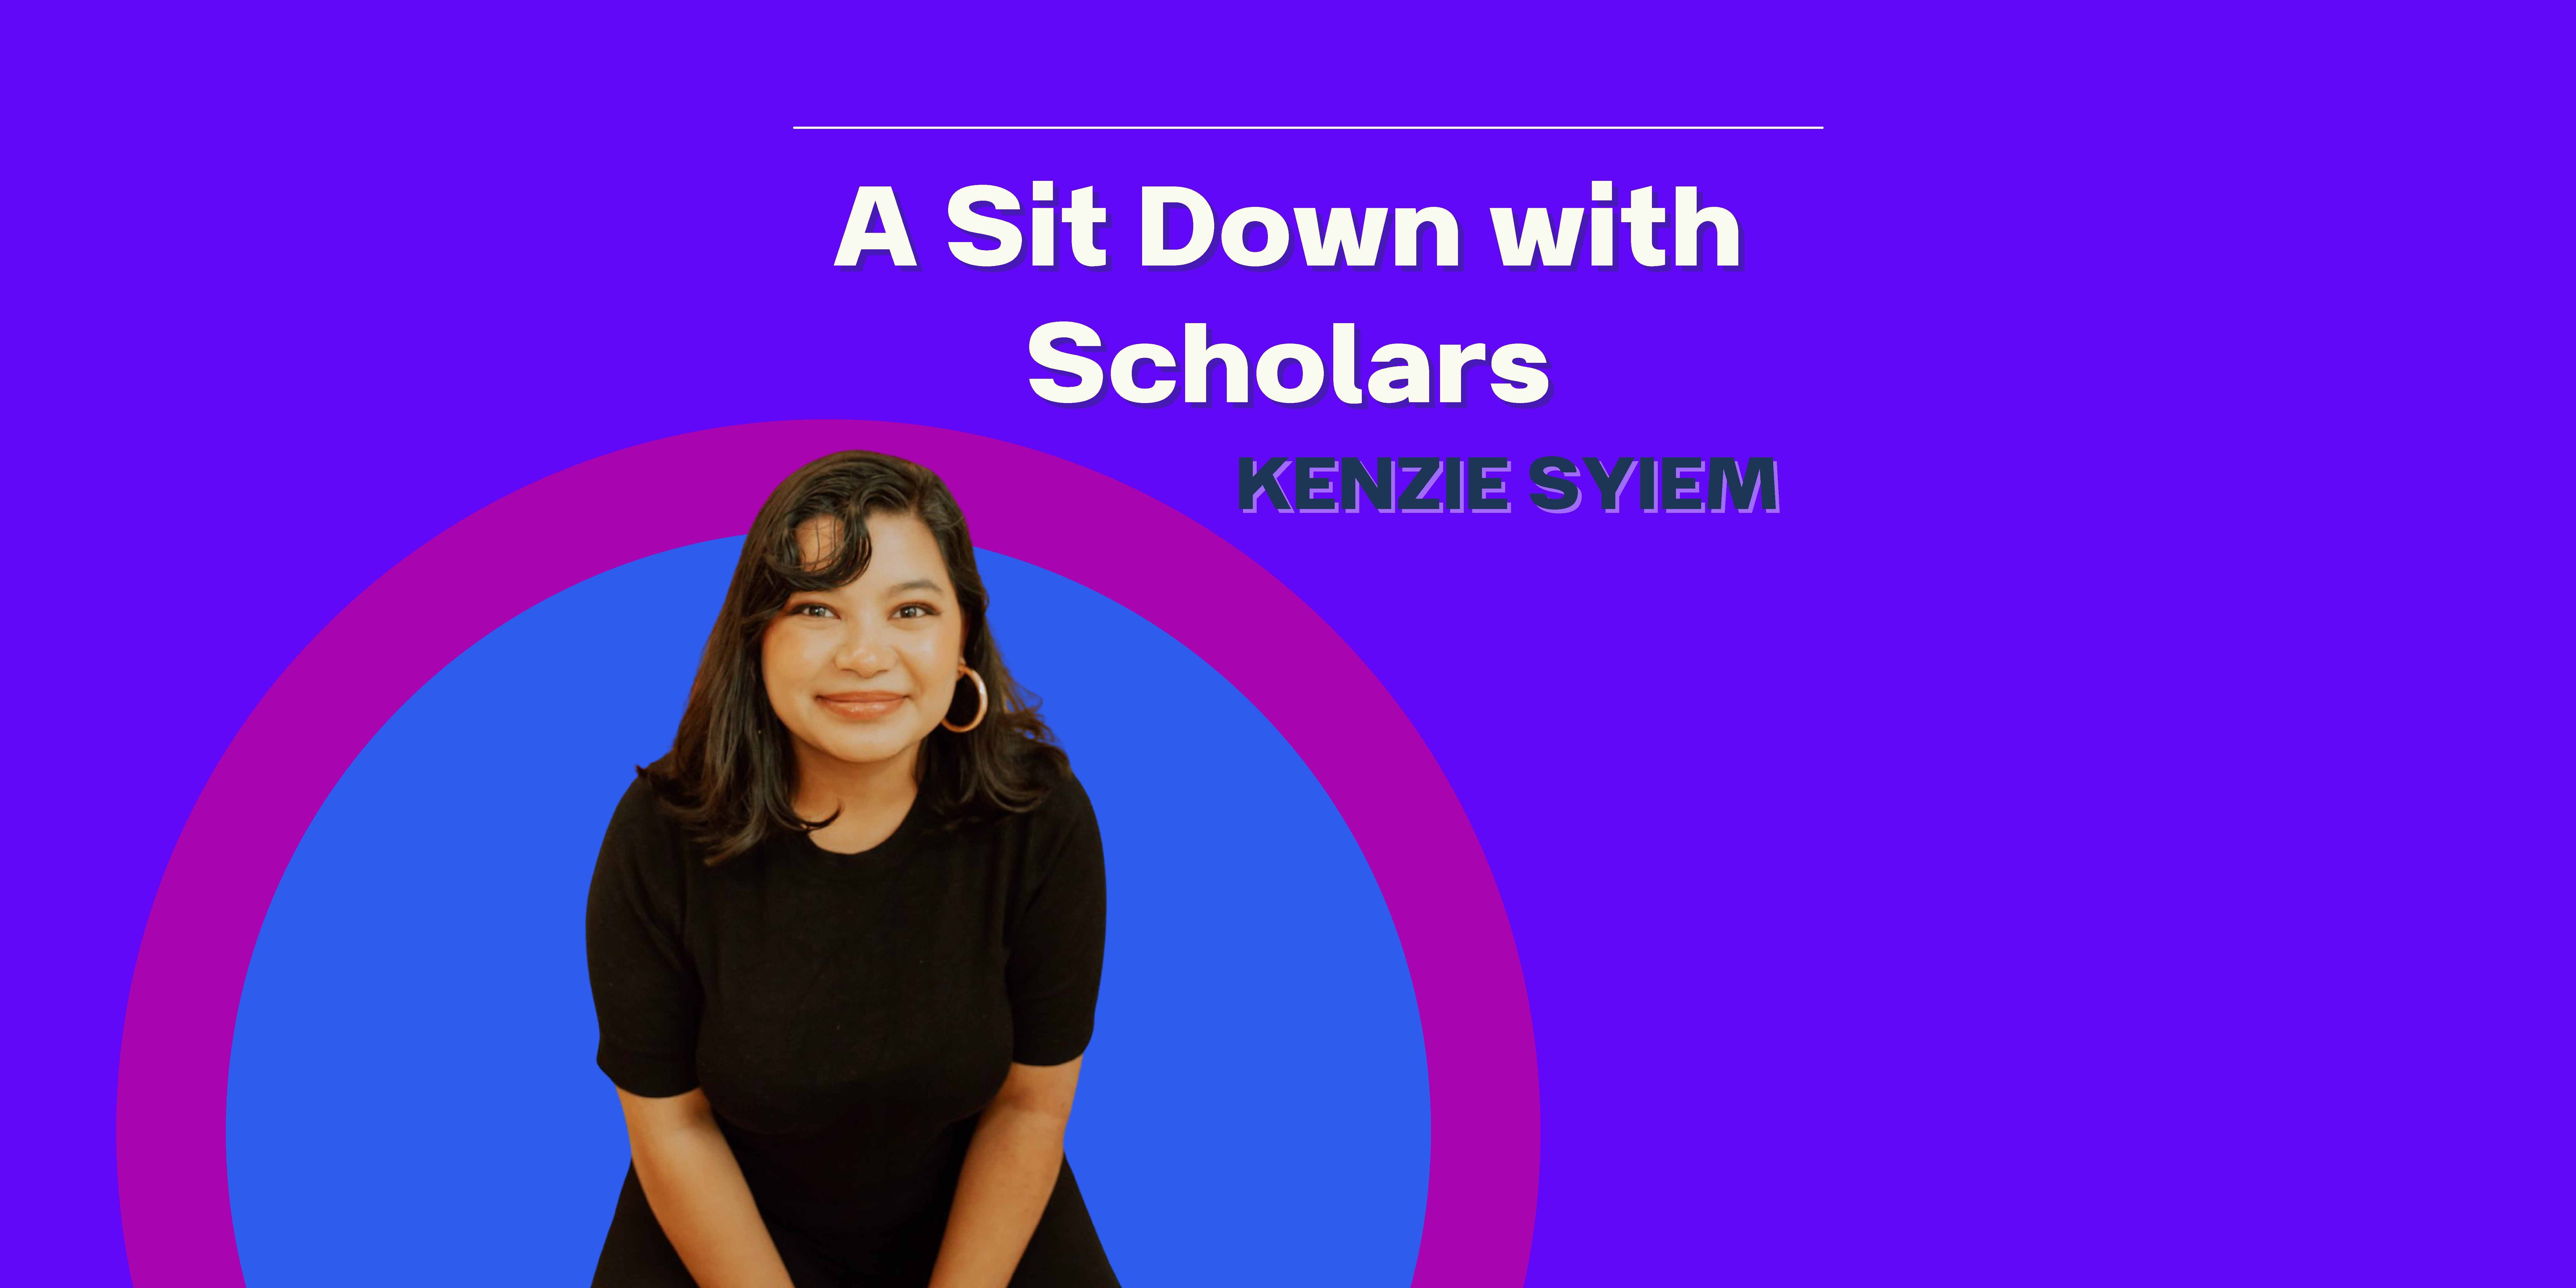 """A Sit Down with Scholars: Episode 3 """"A Sit Down with a Social Media Intern"""""""